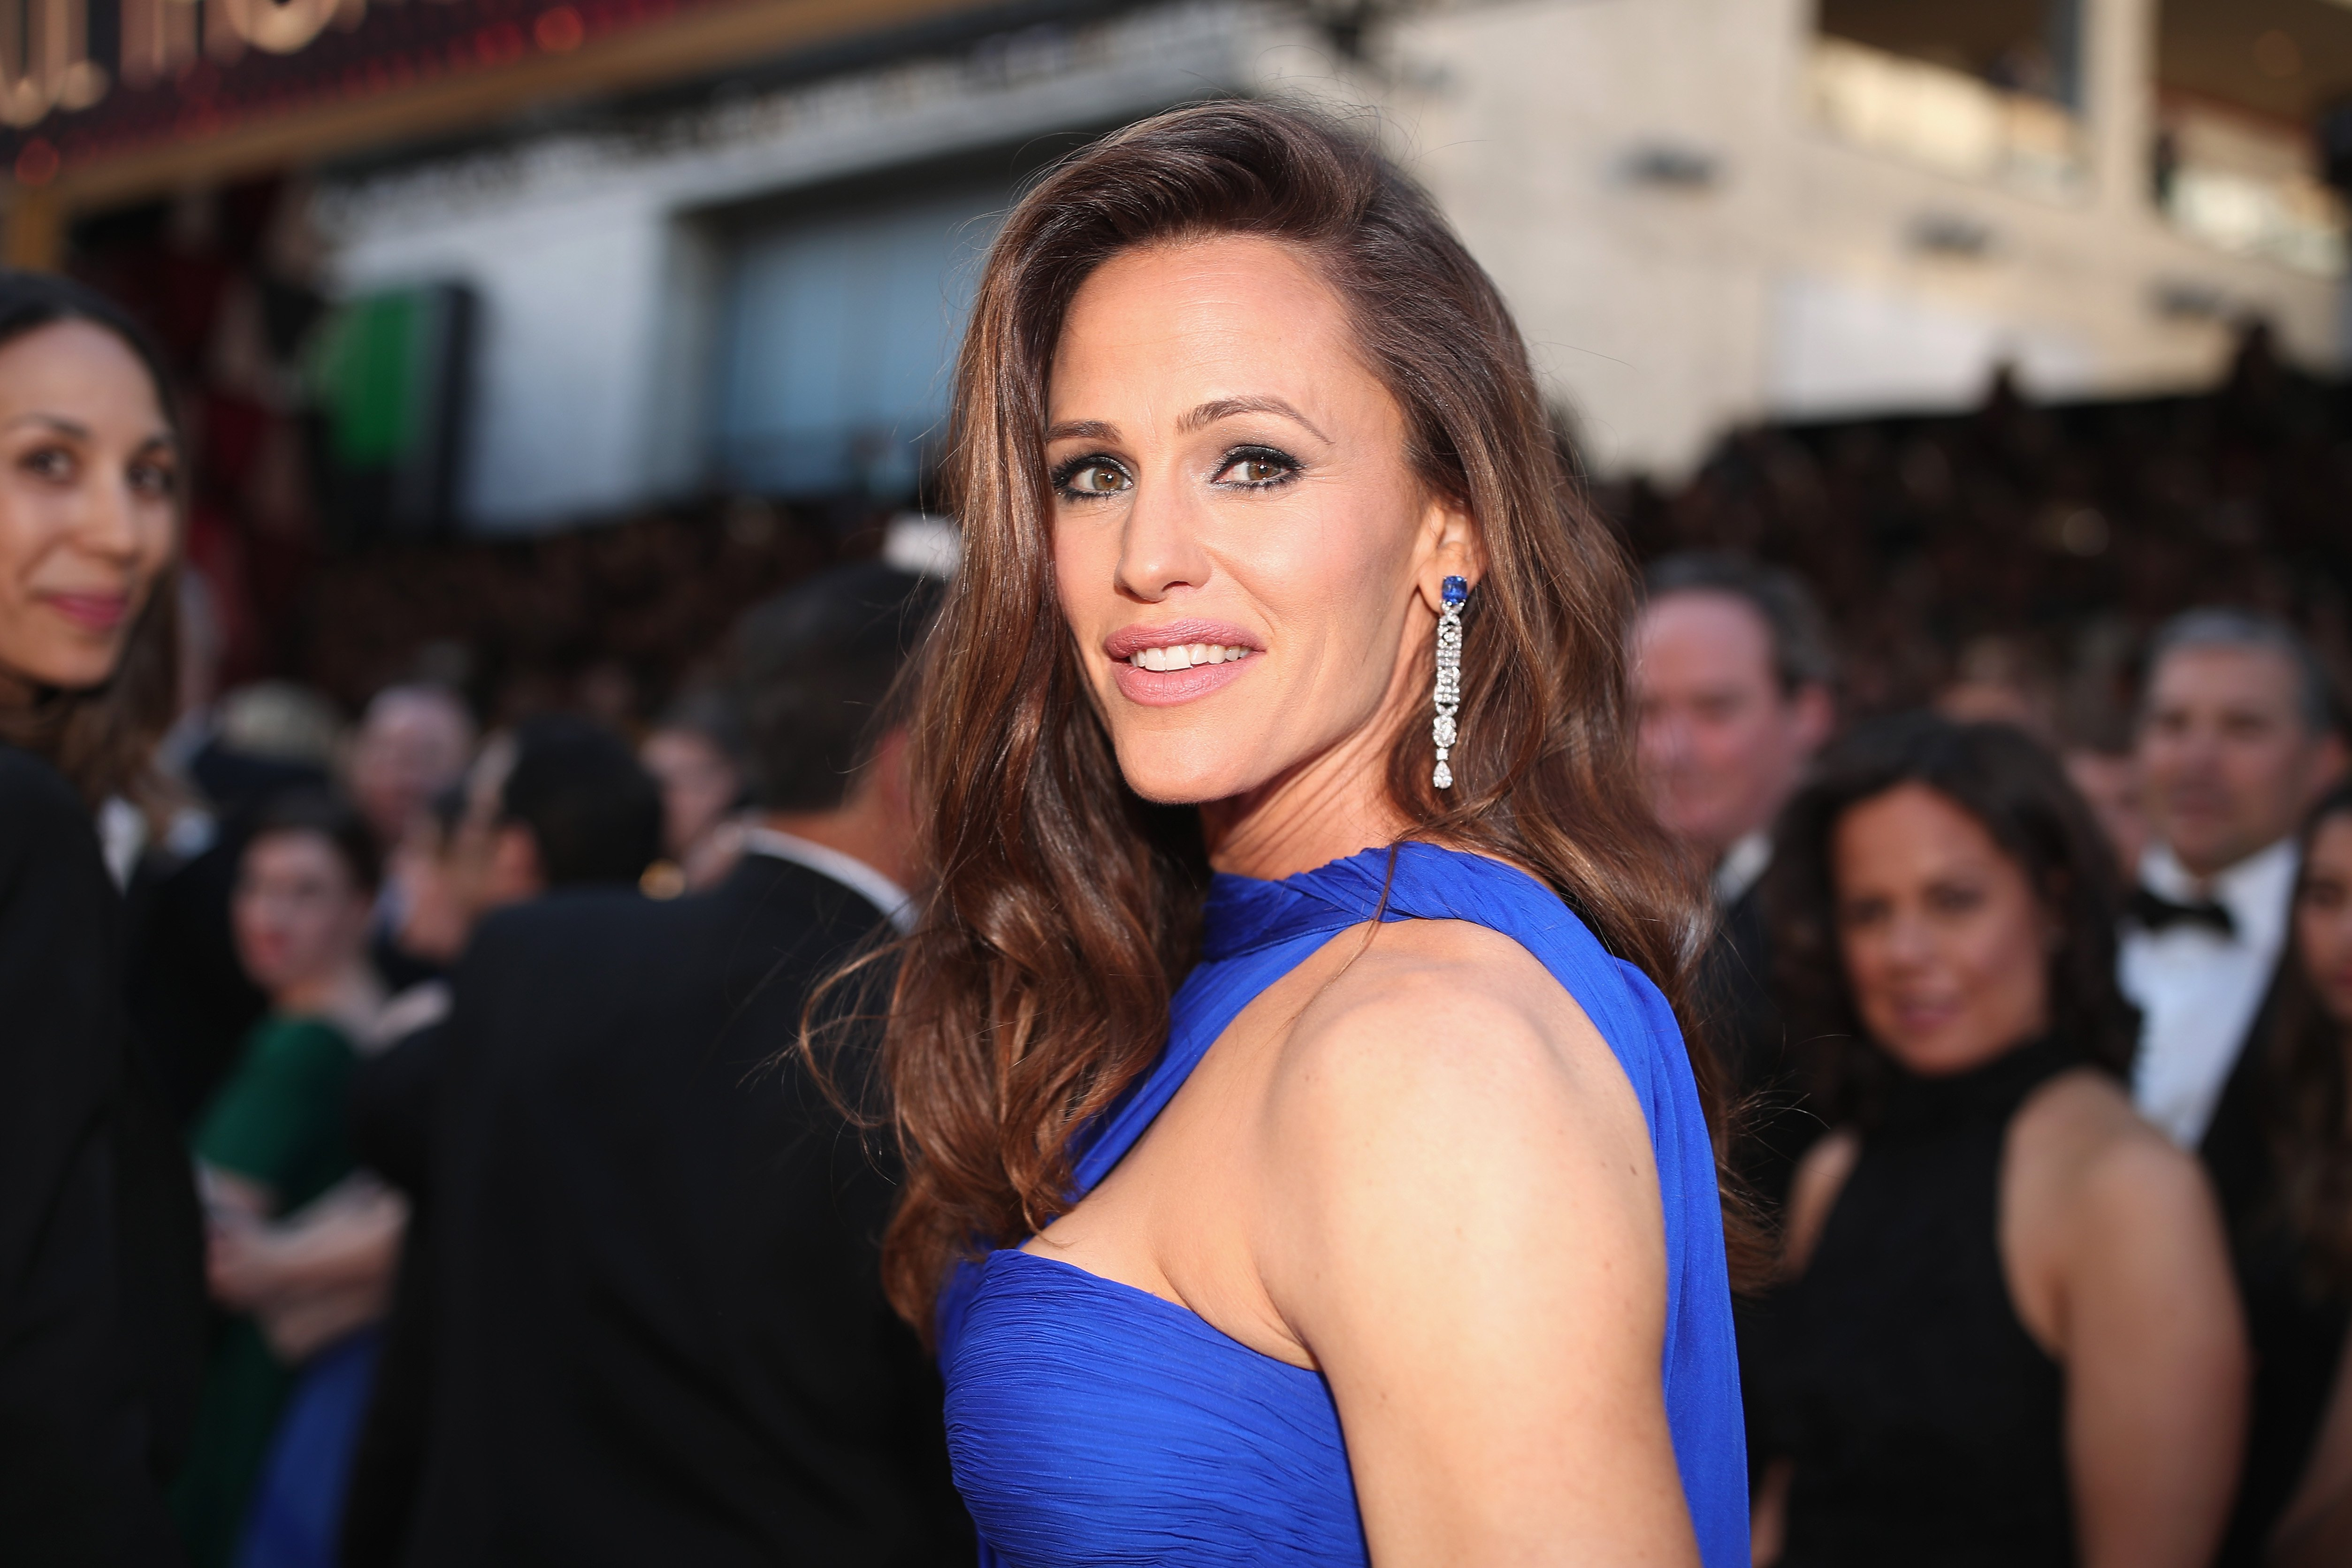 Jennifer Garner pictured at the 90th Annual Academy Awards at Hollywood & Highland Center, 2018, Hollywood, California.   Photo: Getty Images